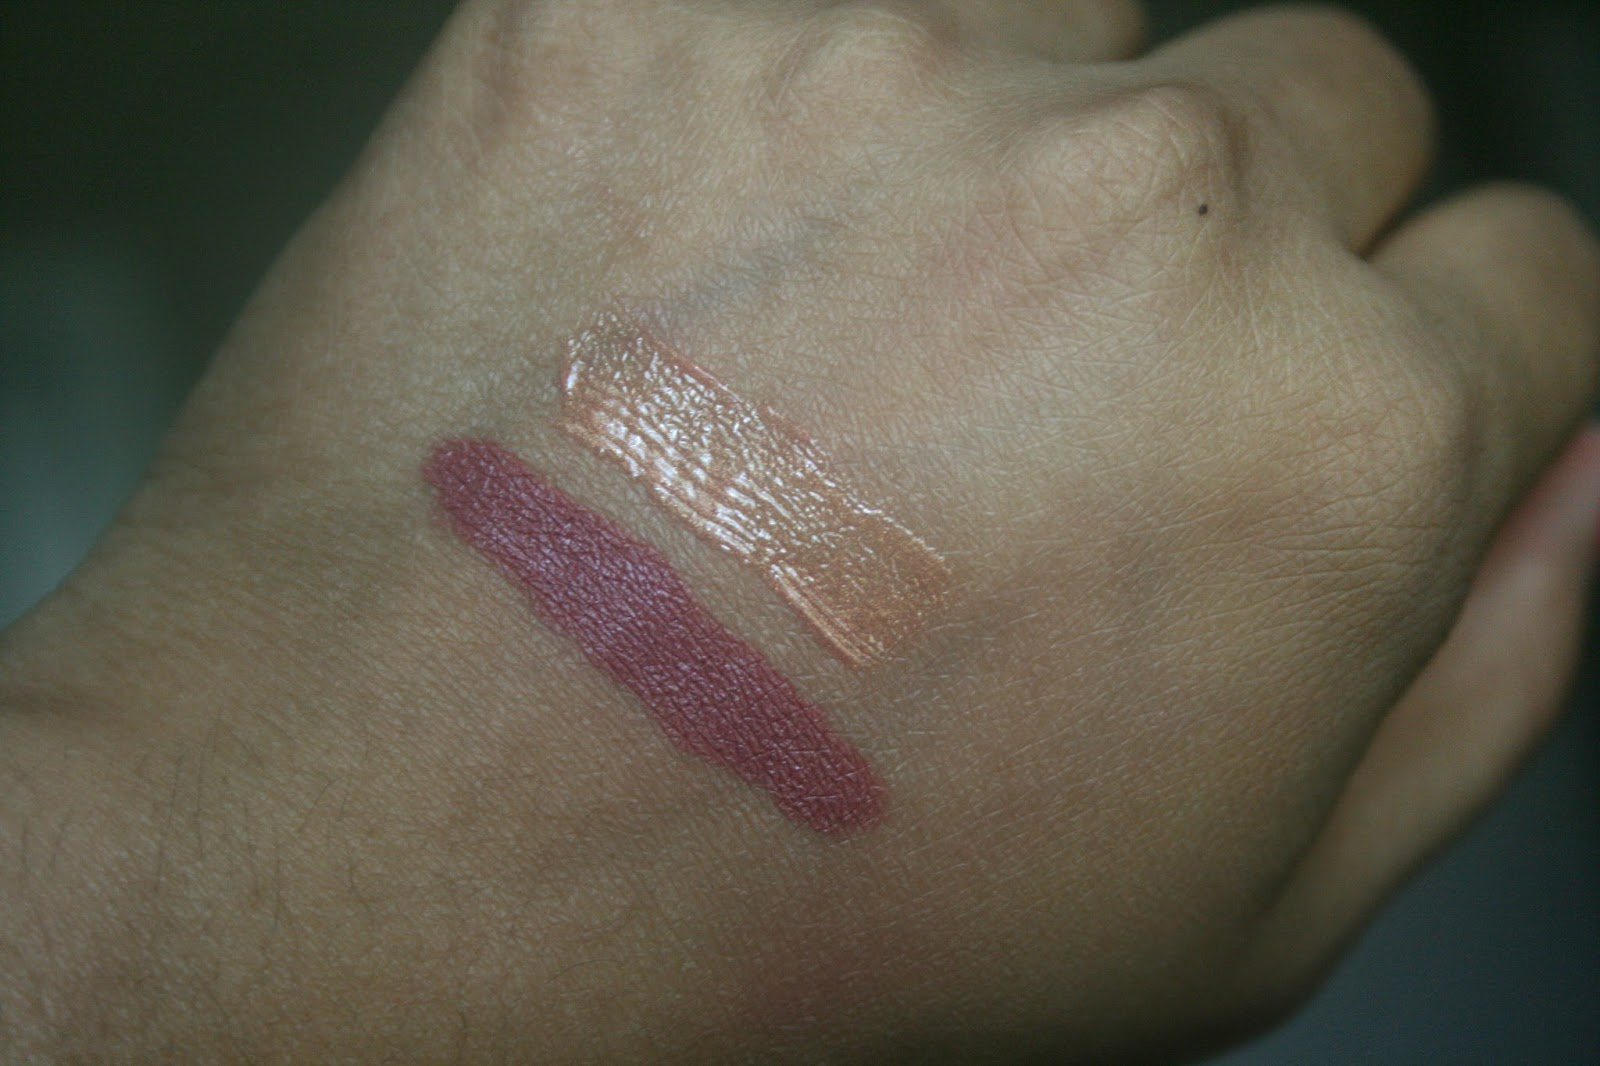 Bite Beauty Matte Creme Lip Crayon in Glace, Agave Lip Mask Champagne Swatches